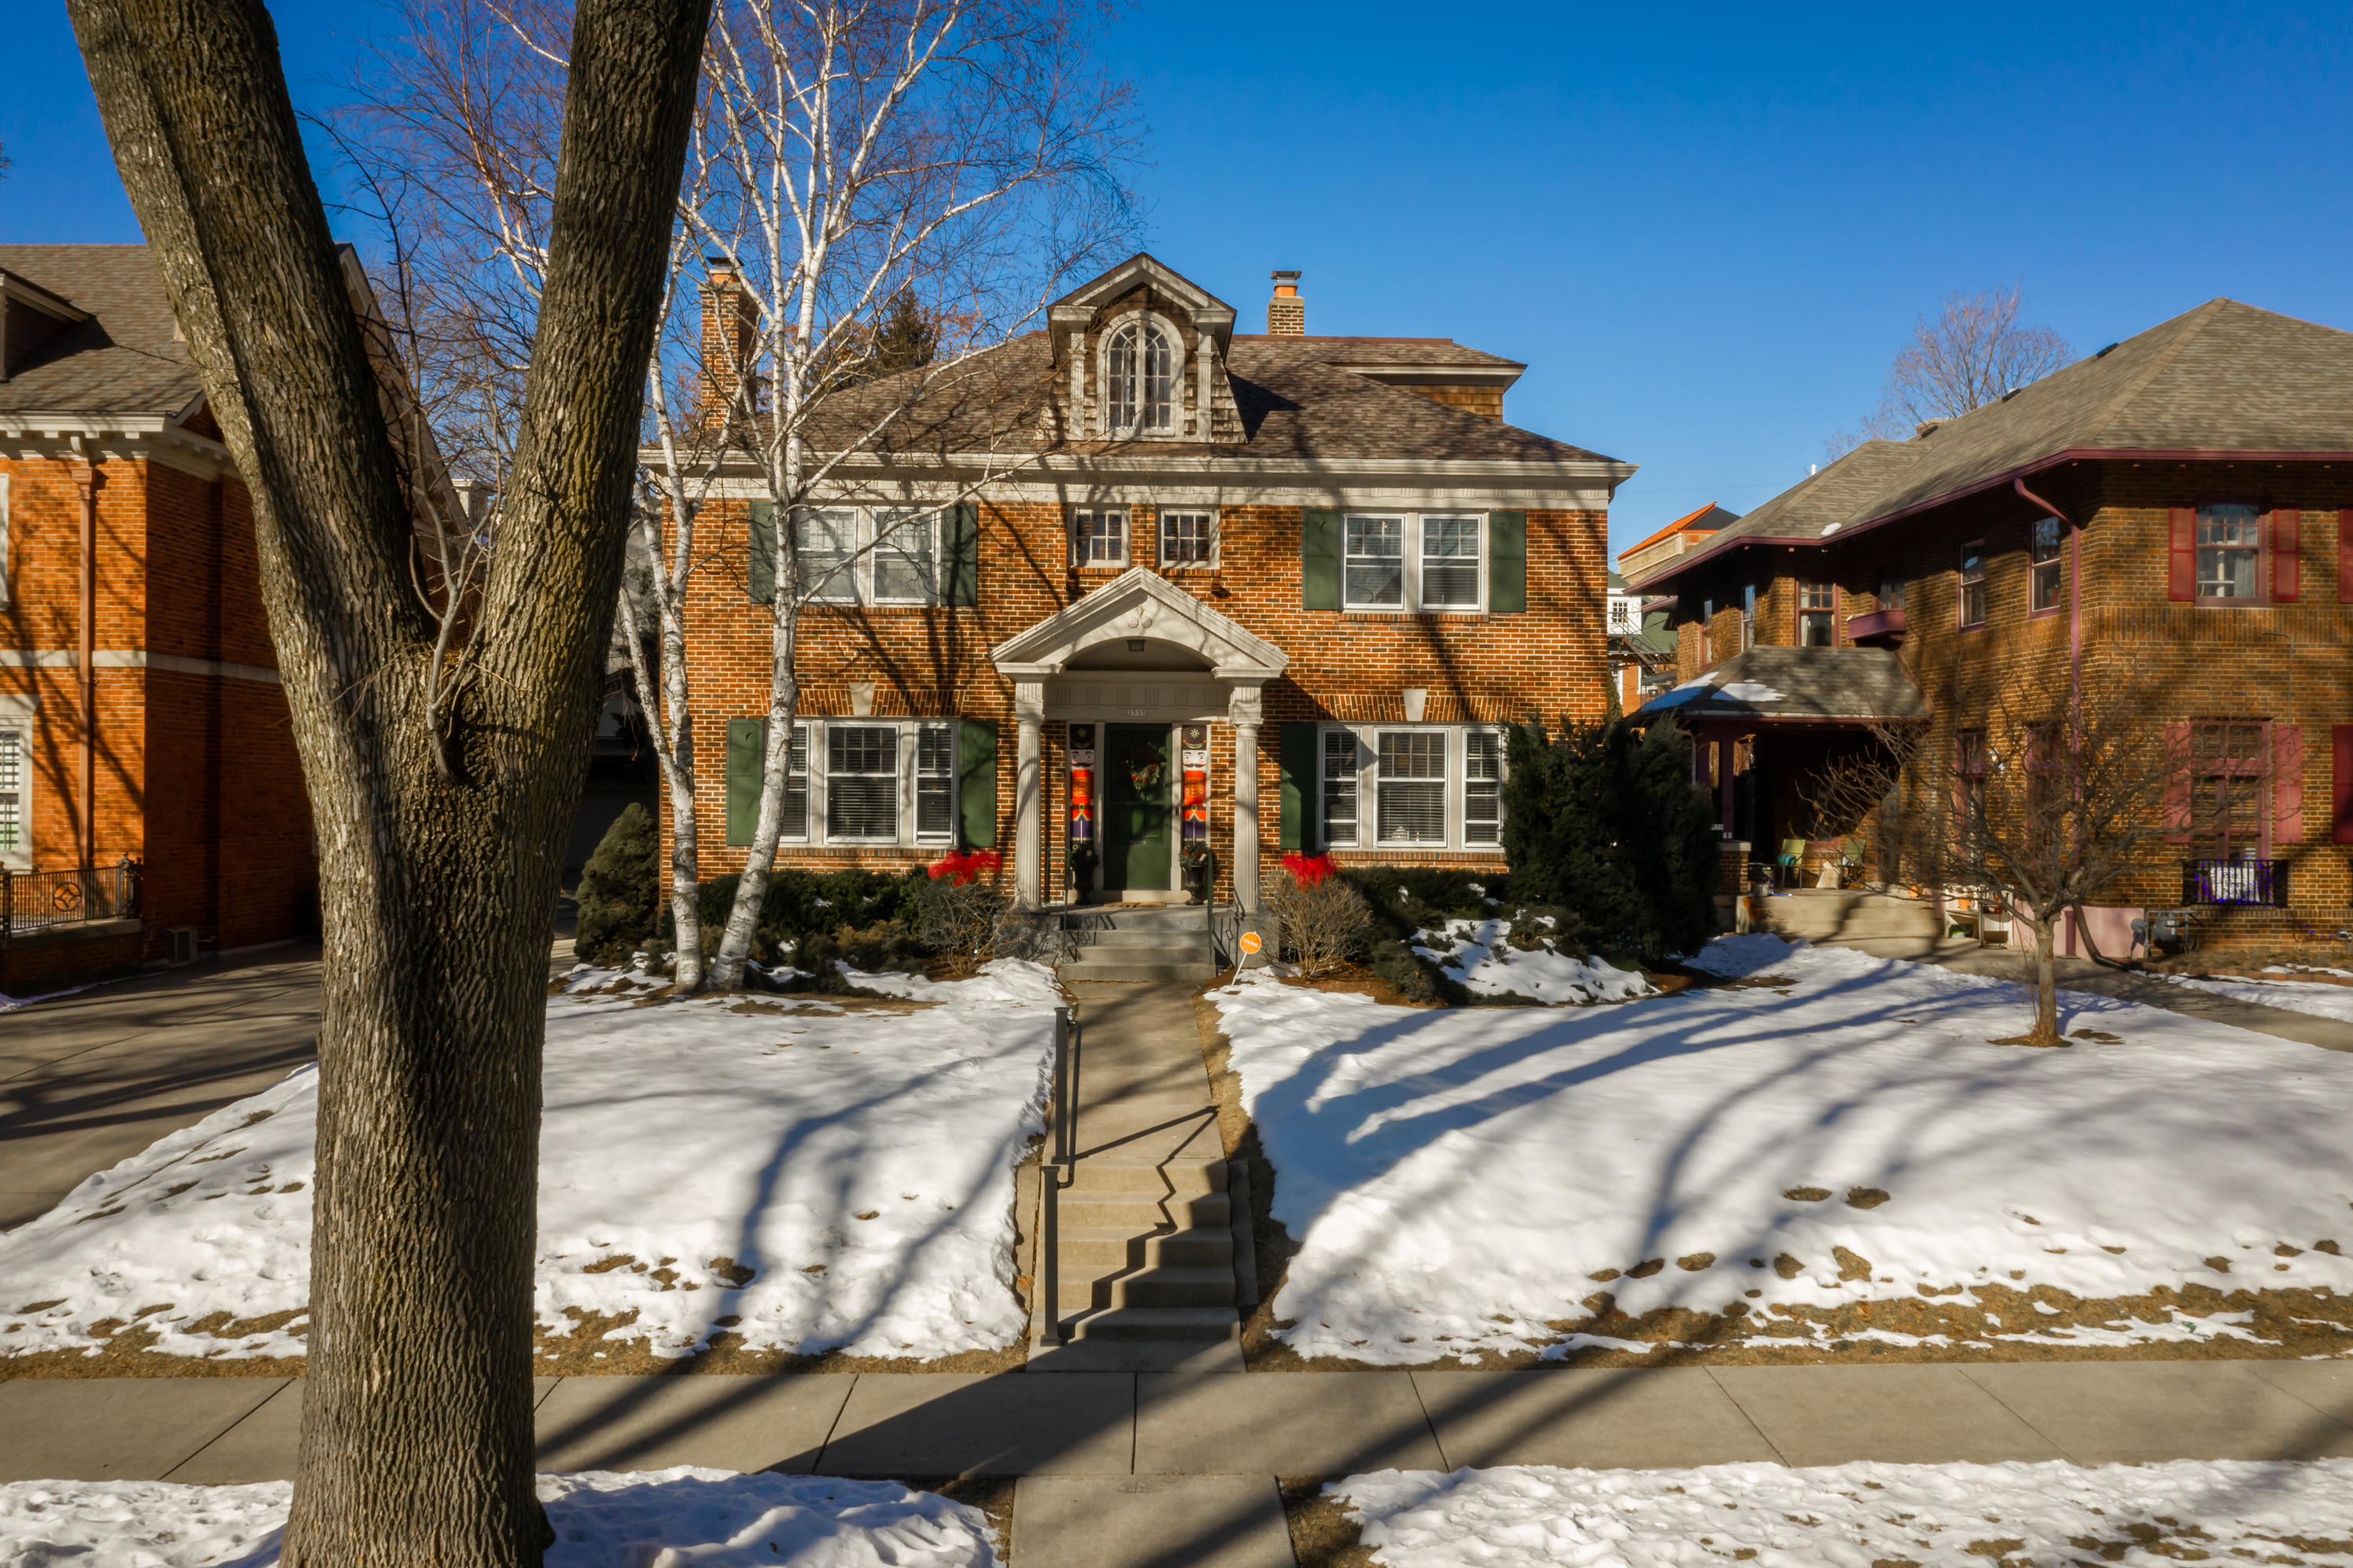 Photo of 2535 N Terrace Ave, Milwaukee, WI 53211